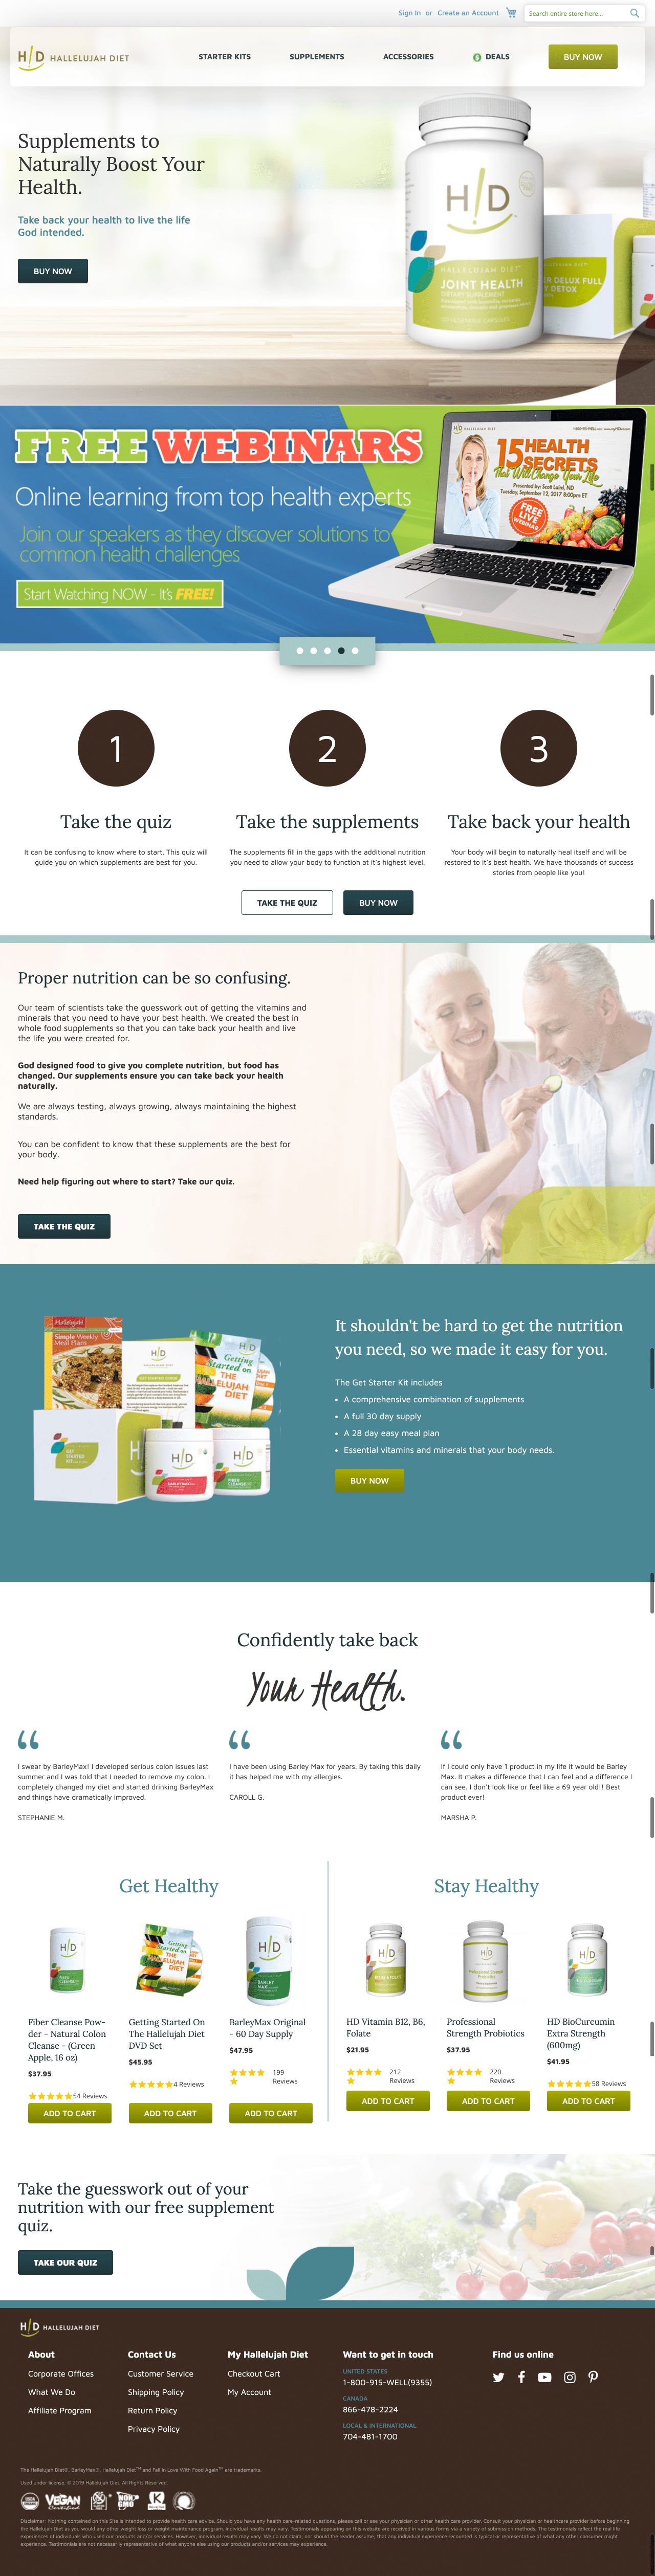 Hallelujah Diet shop homepage